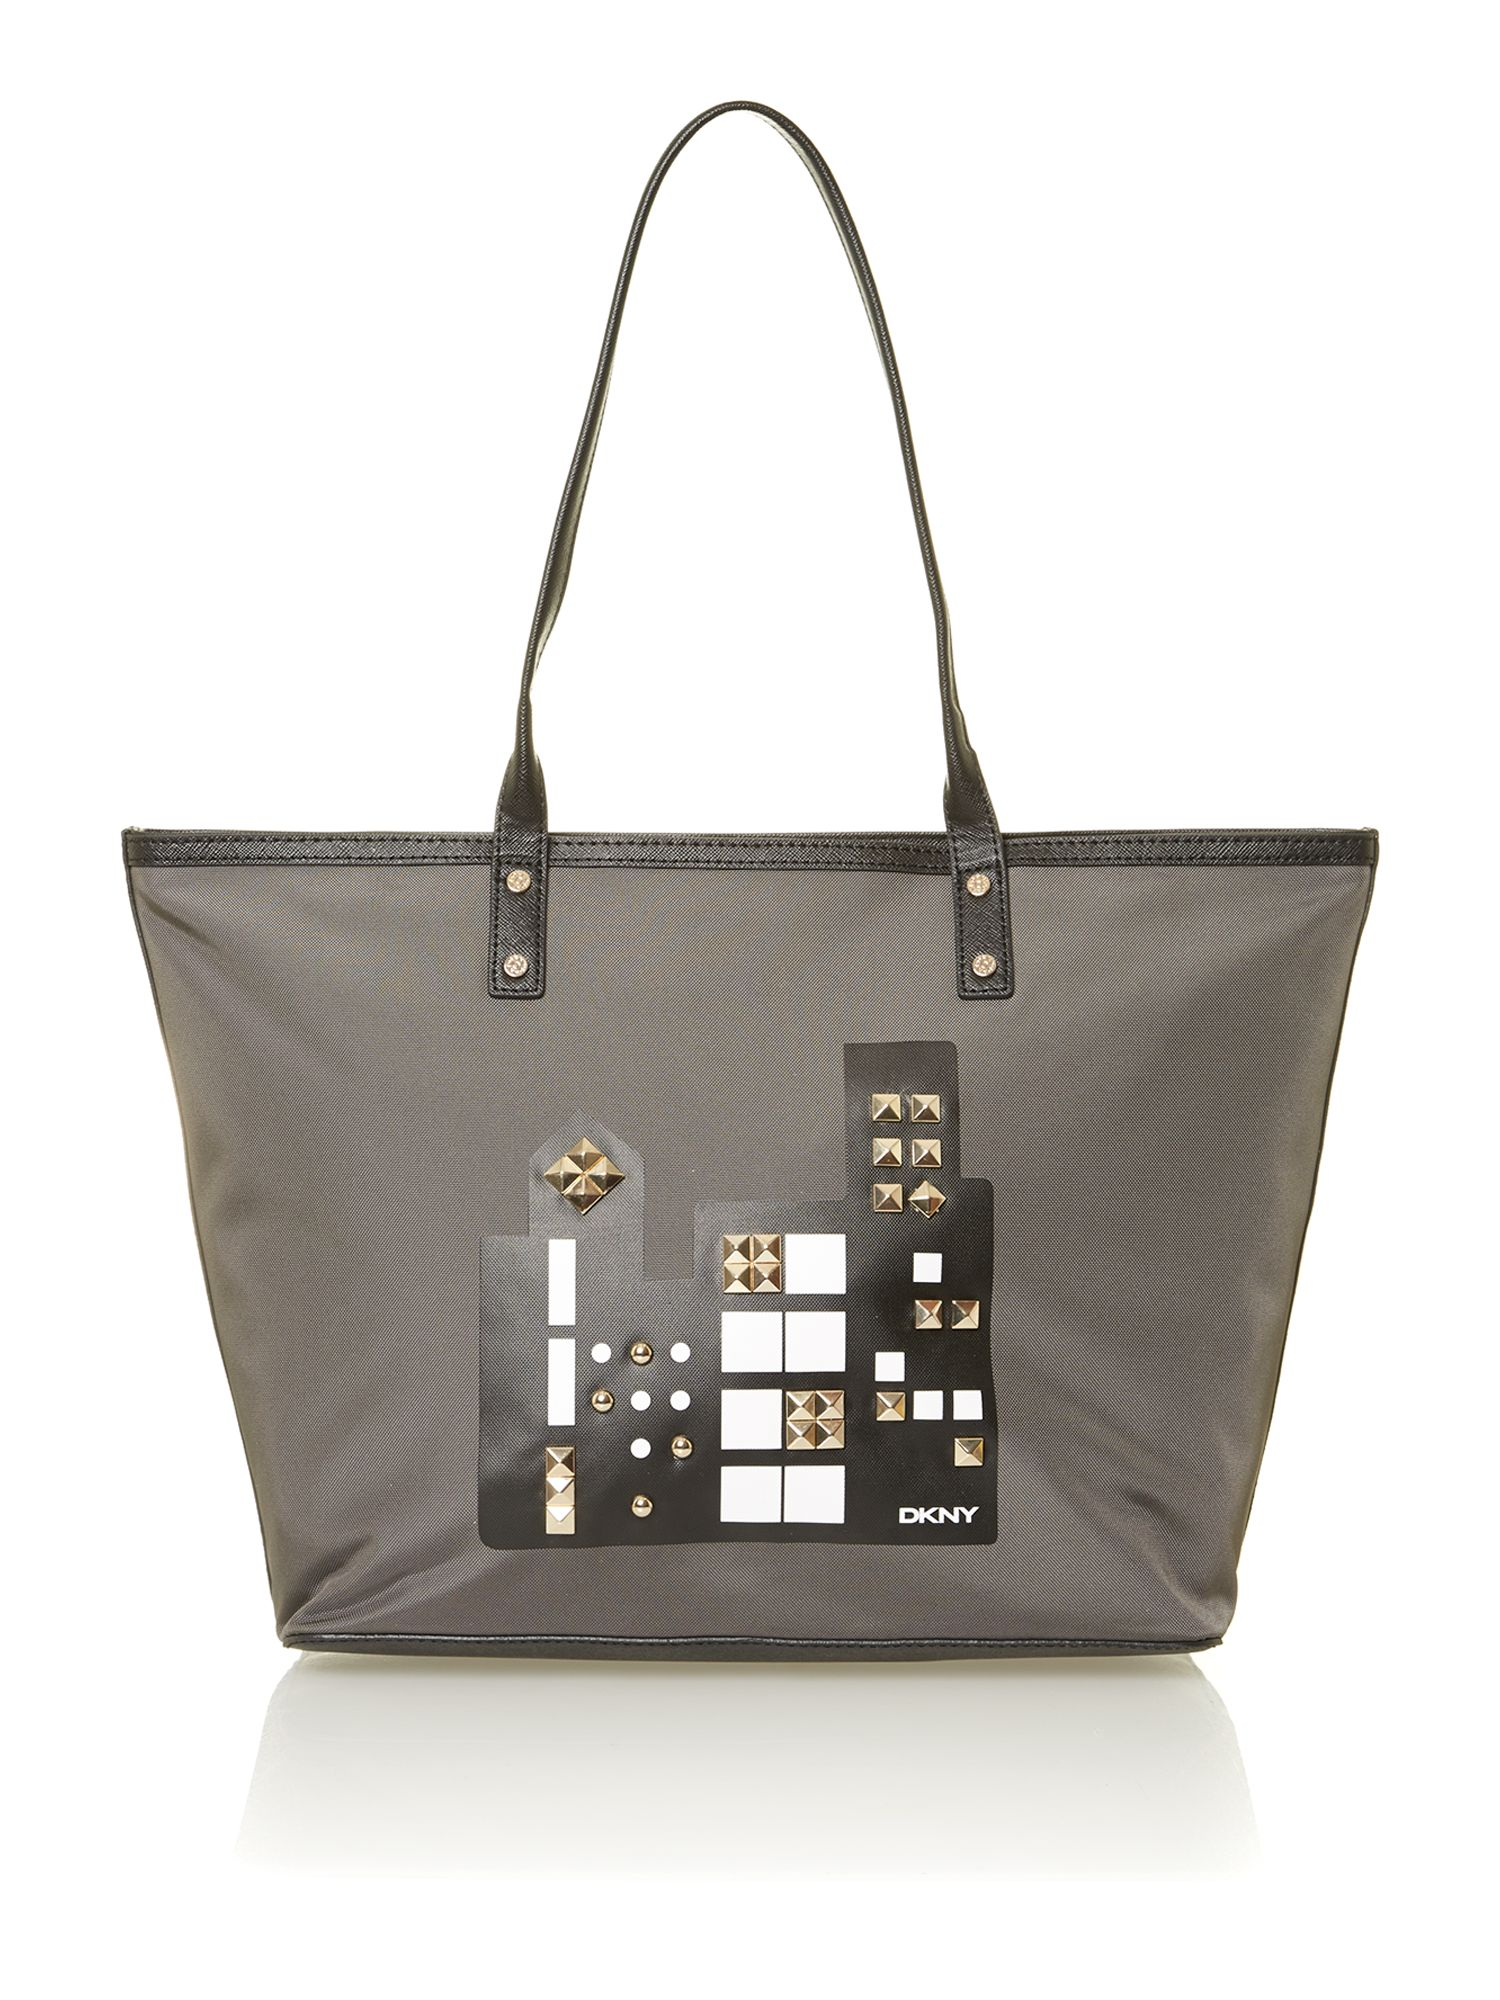 City DKNY multi coloured tote bag